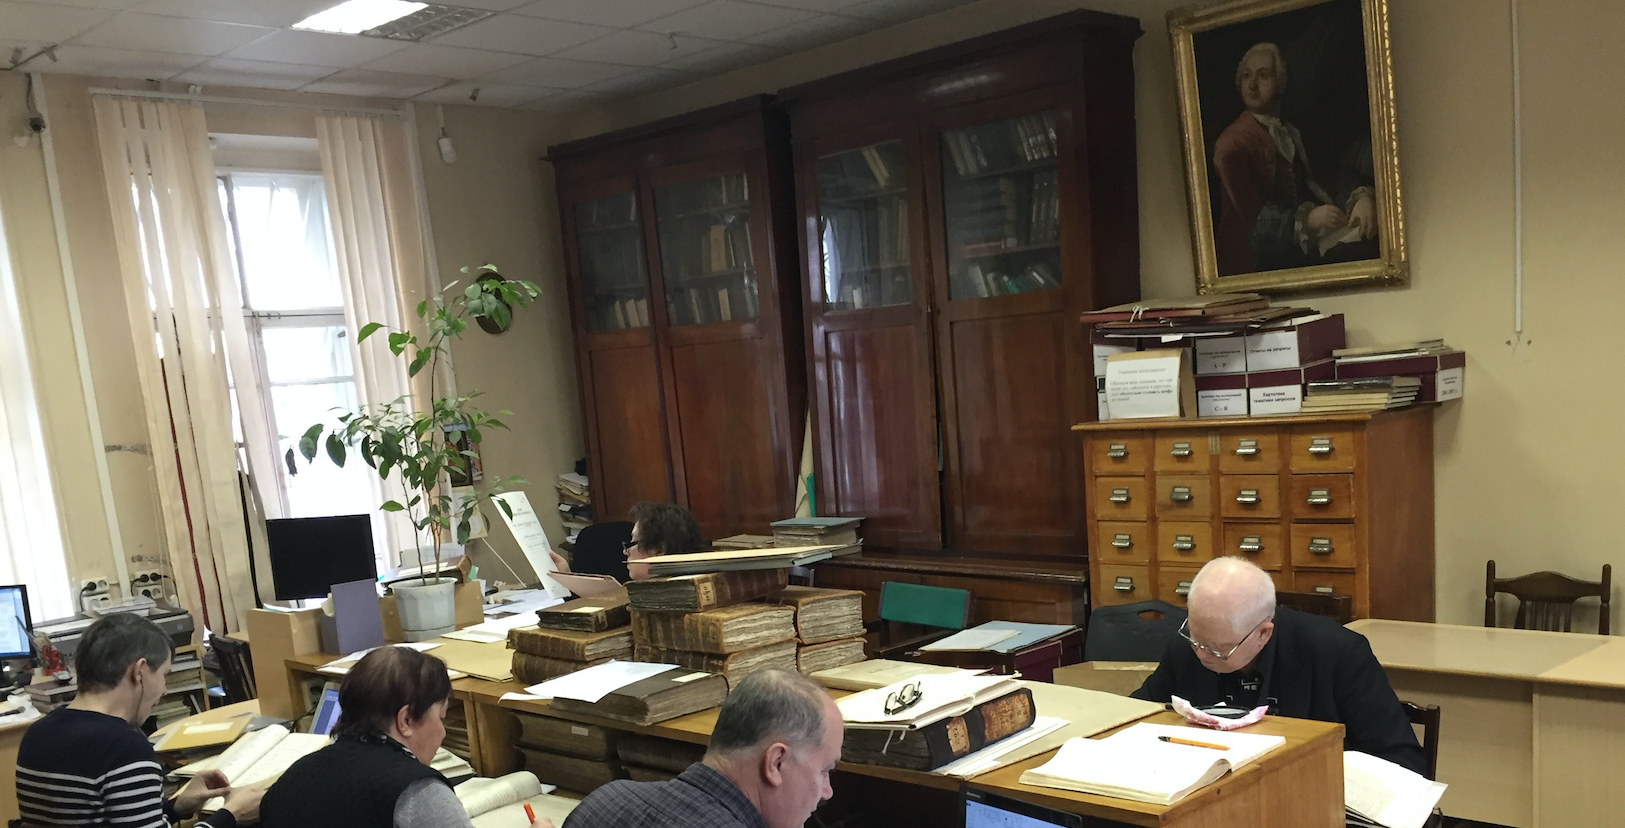 Image 4. Reading room of the Archive of the Saint Petersburg Academy of Sciences. © Yann Potin